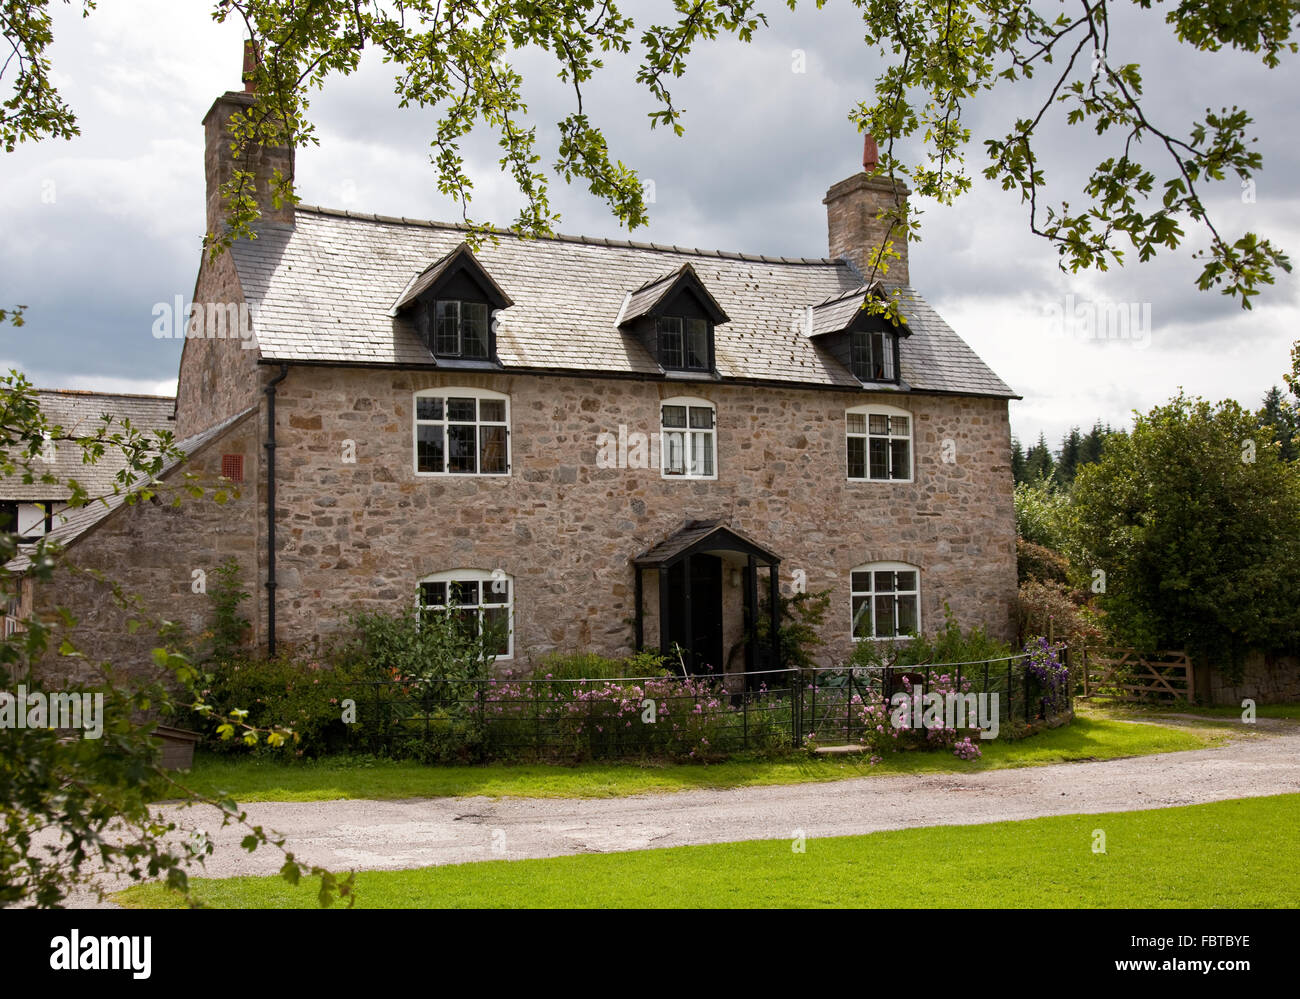 Rough Stone House With Dormer Windows And Surrounding